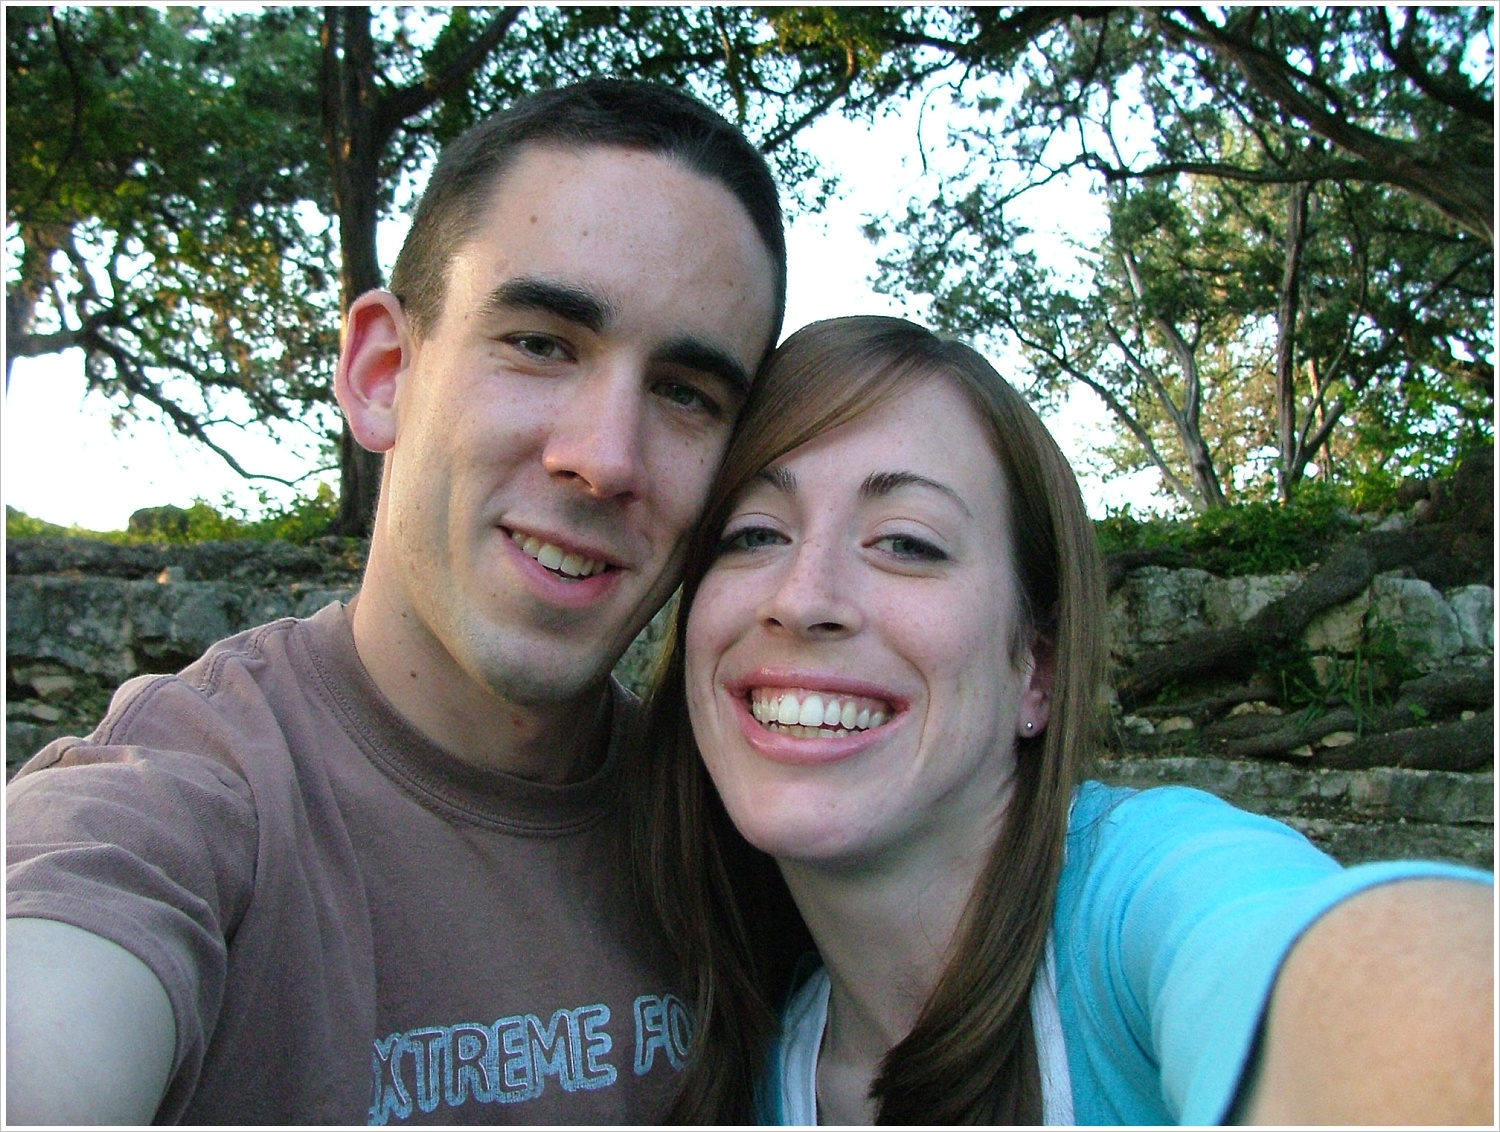 Selfie with an actual camera on one of our many dates to Zilker Park in Austin.